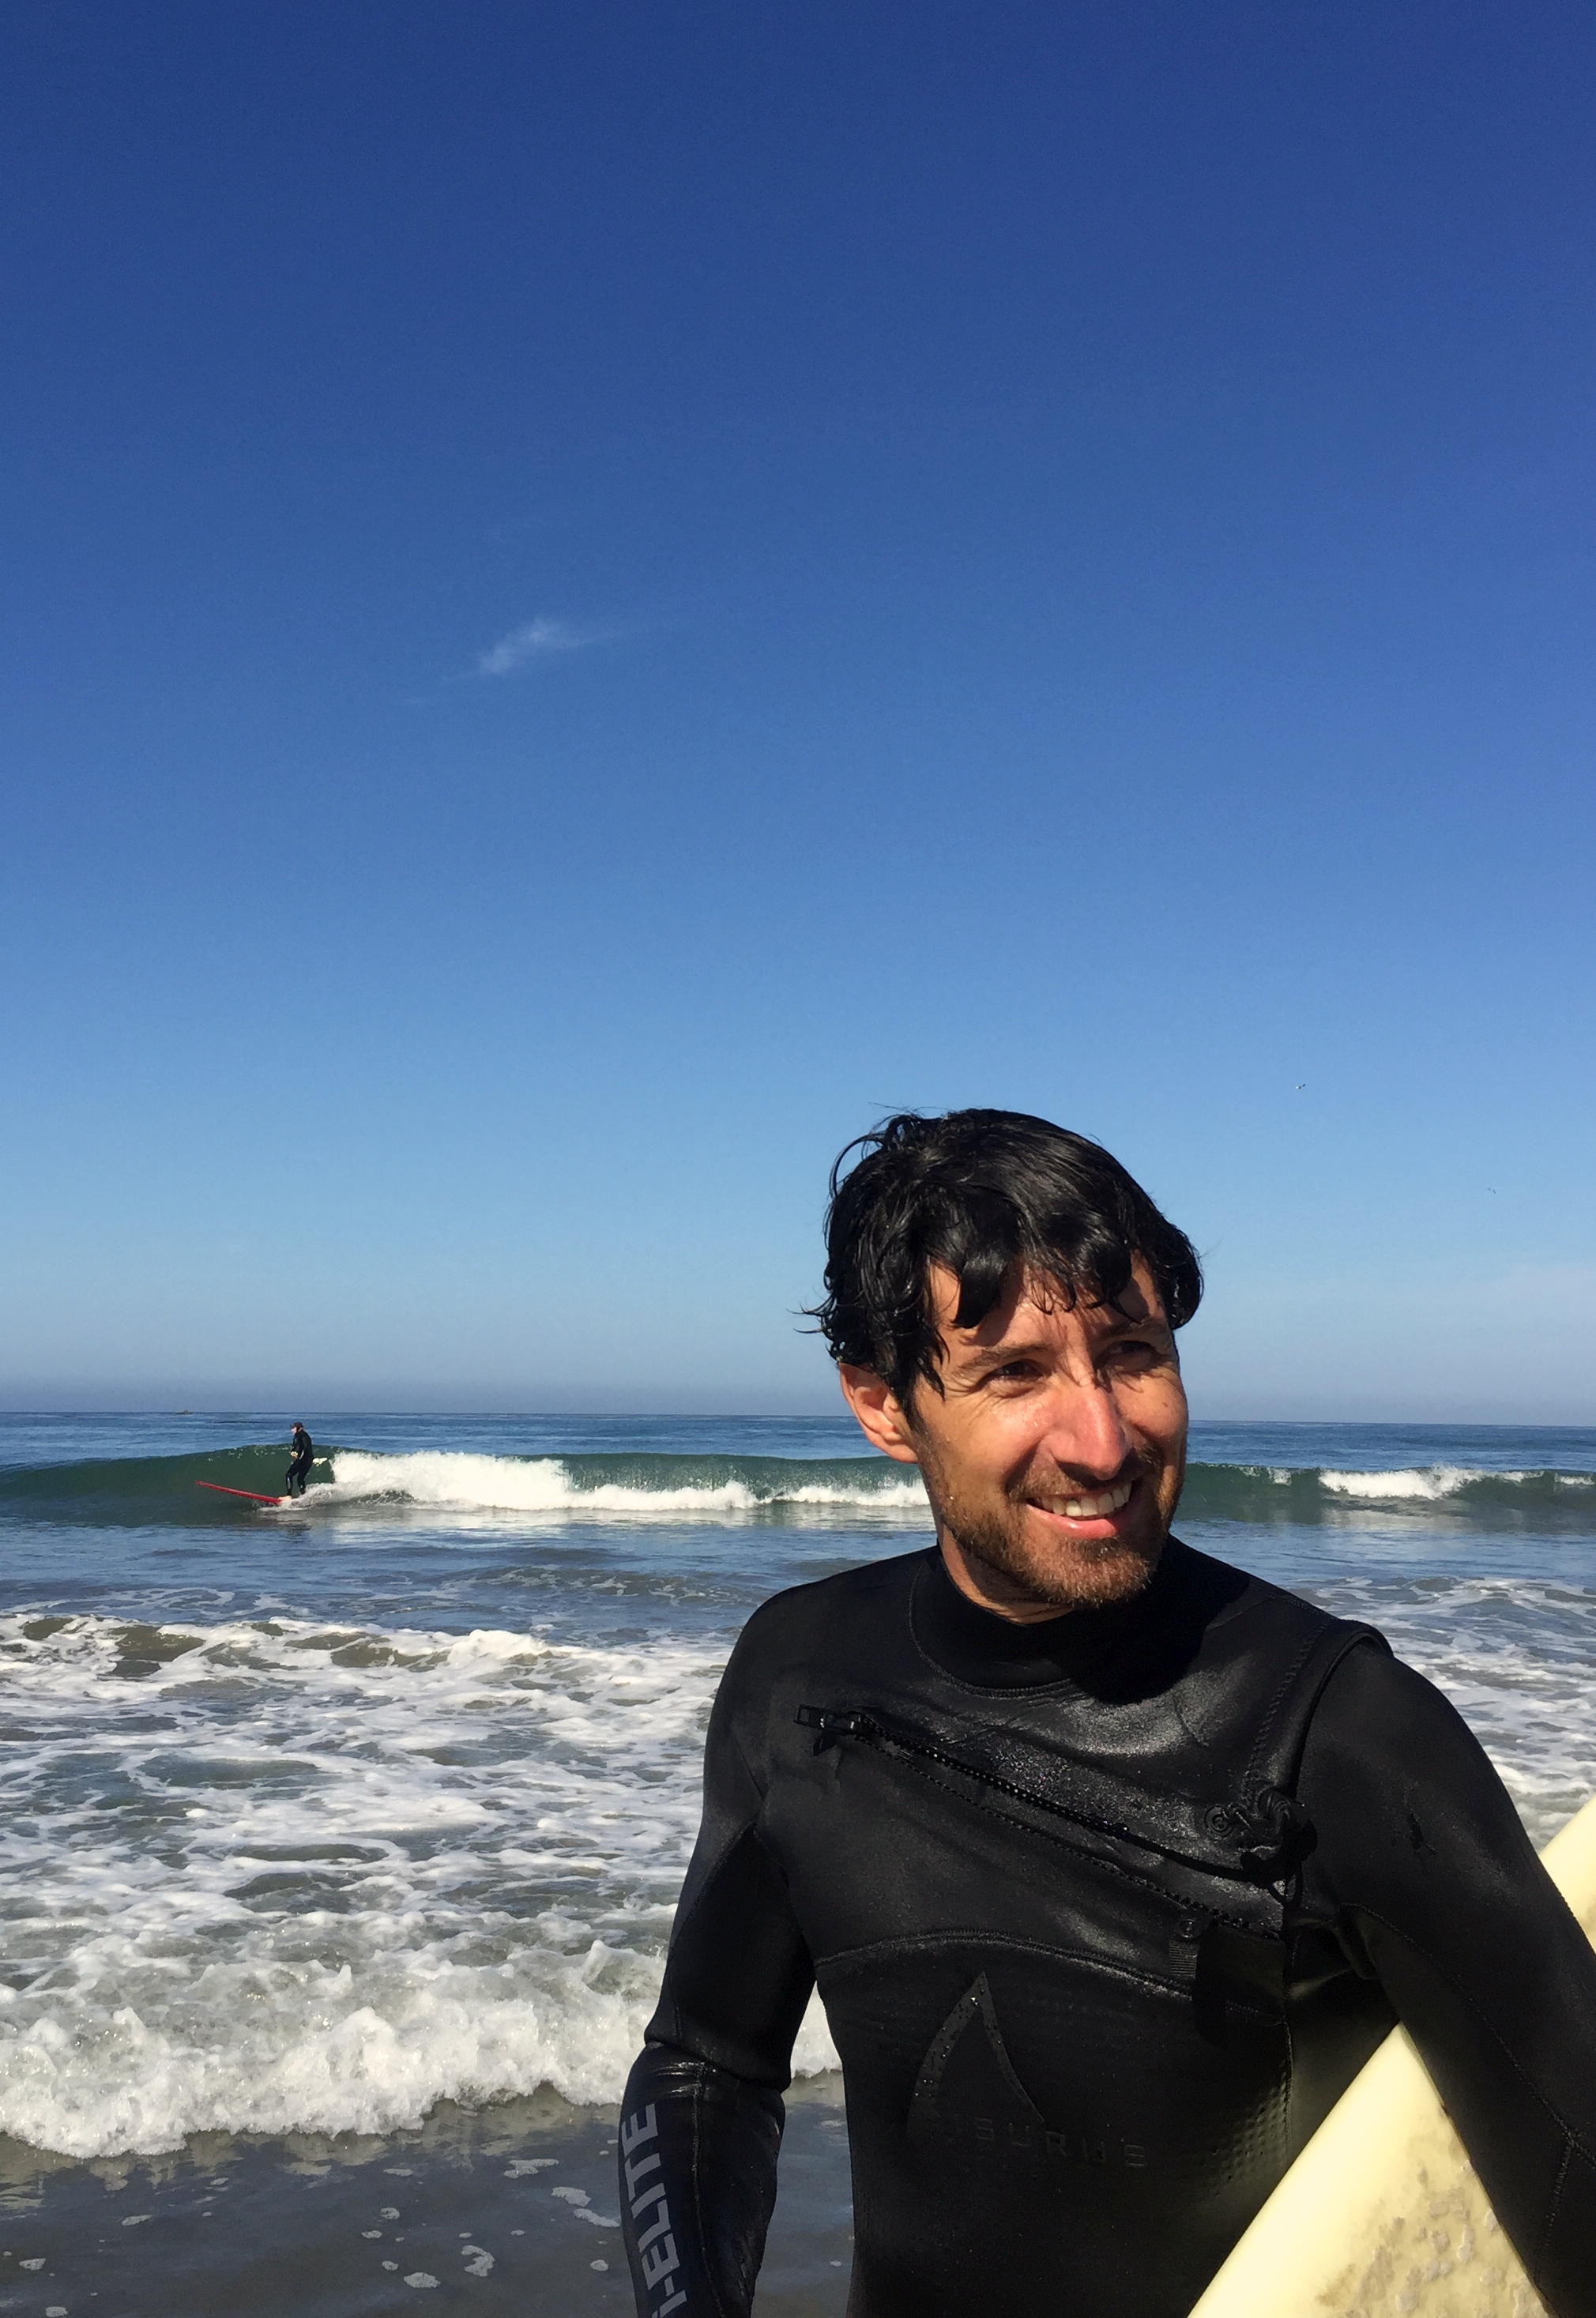 Also post-surfing pictures: palpable bliss.